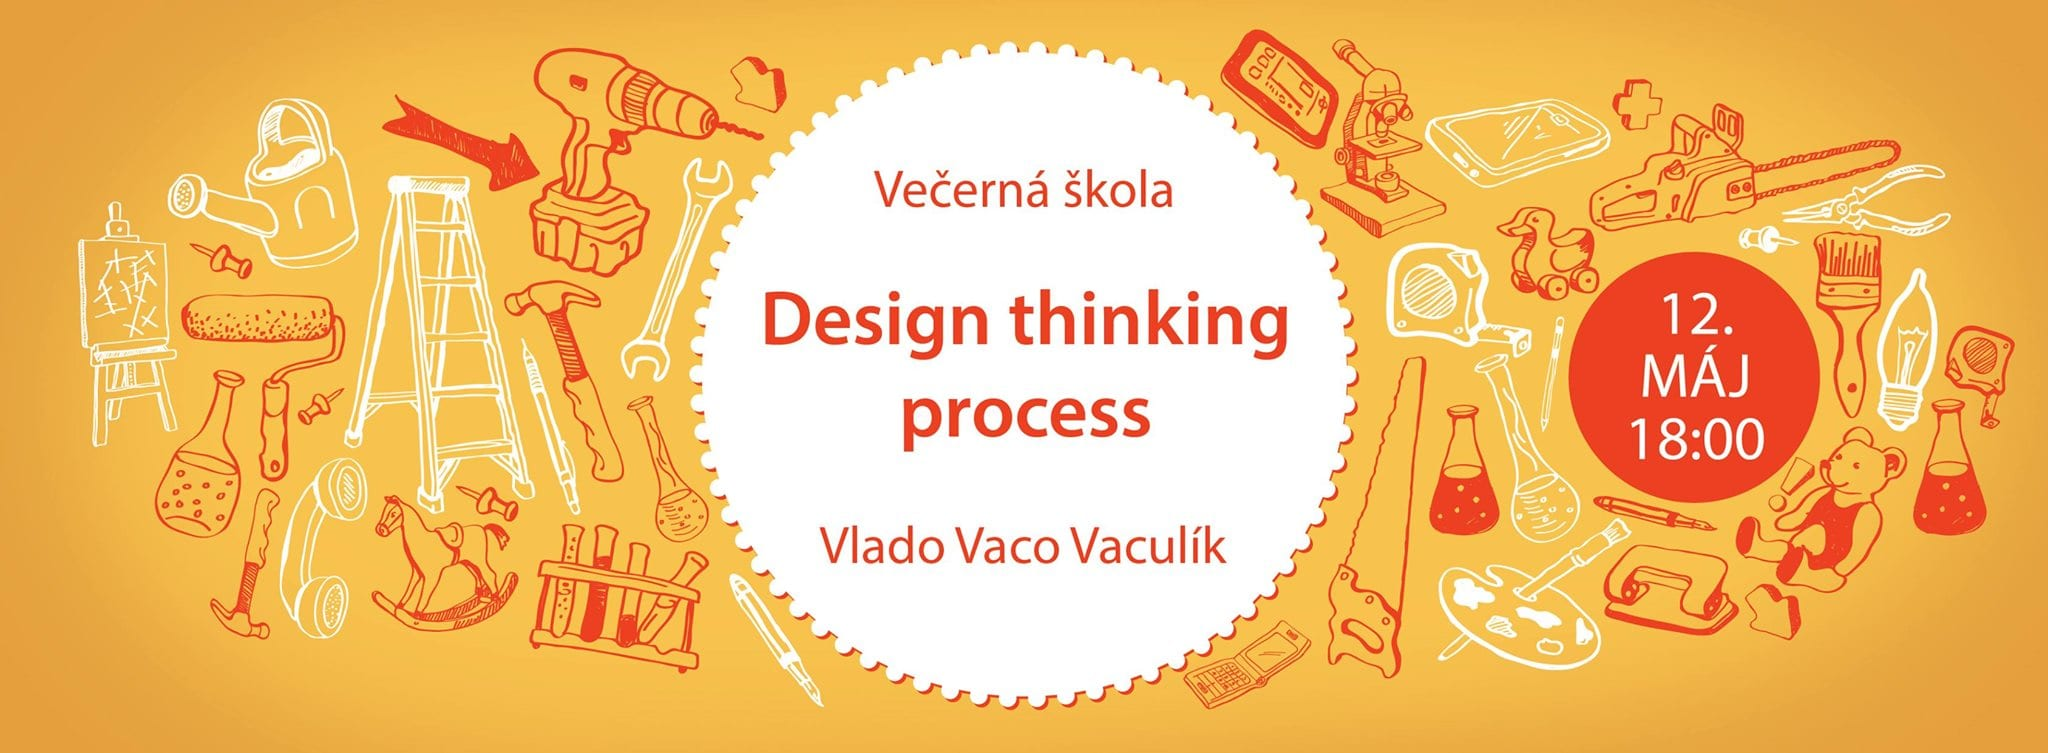 11059872 853524688062699 6506374454482074844 o - Design thinking process